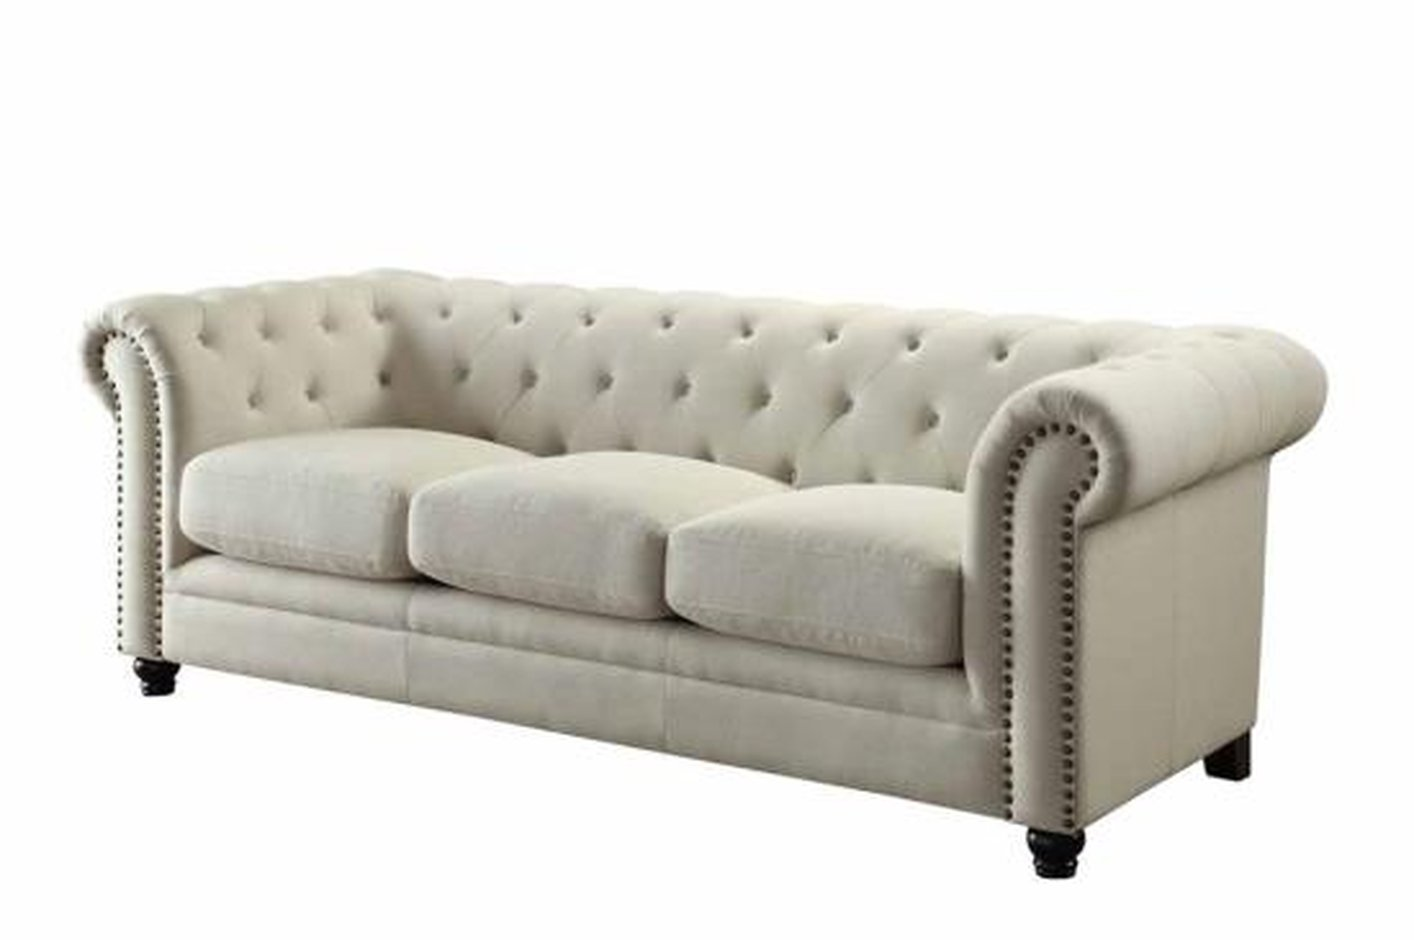 Coaster Roy 504554 Beige Fabric Sofa Steal A Sofa Furniture Outlet Los Angeles Ca